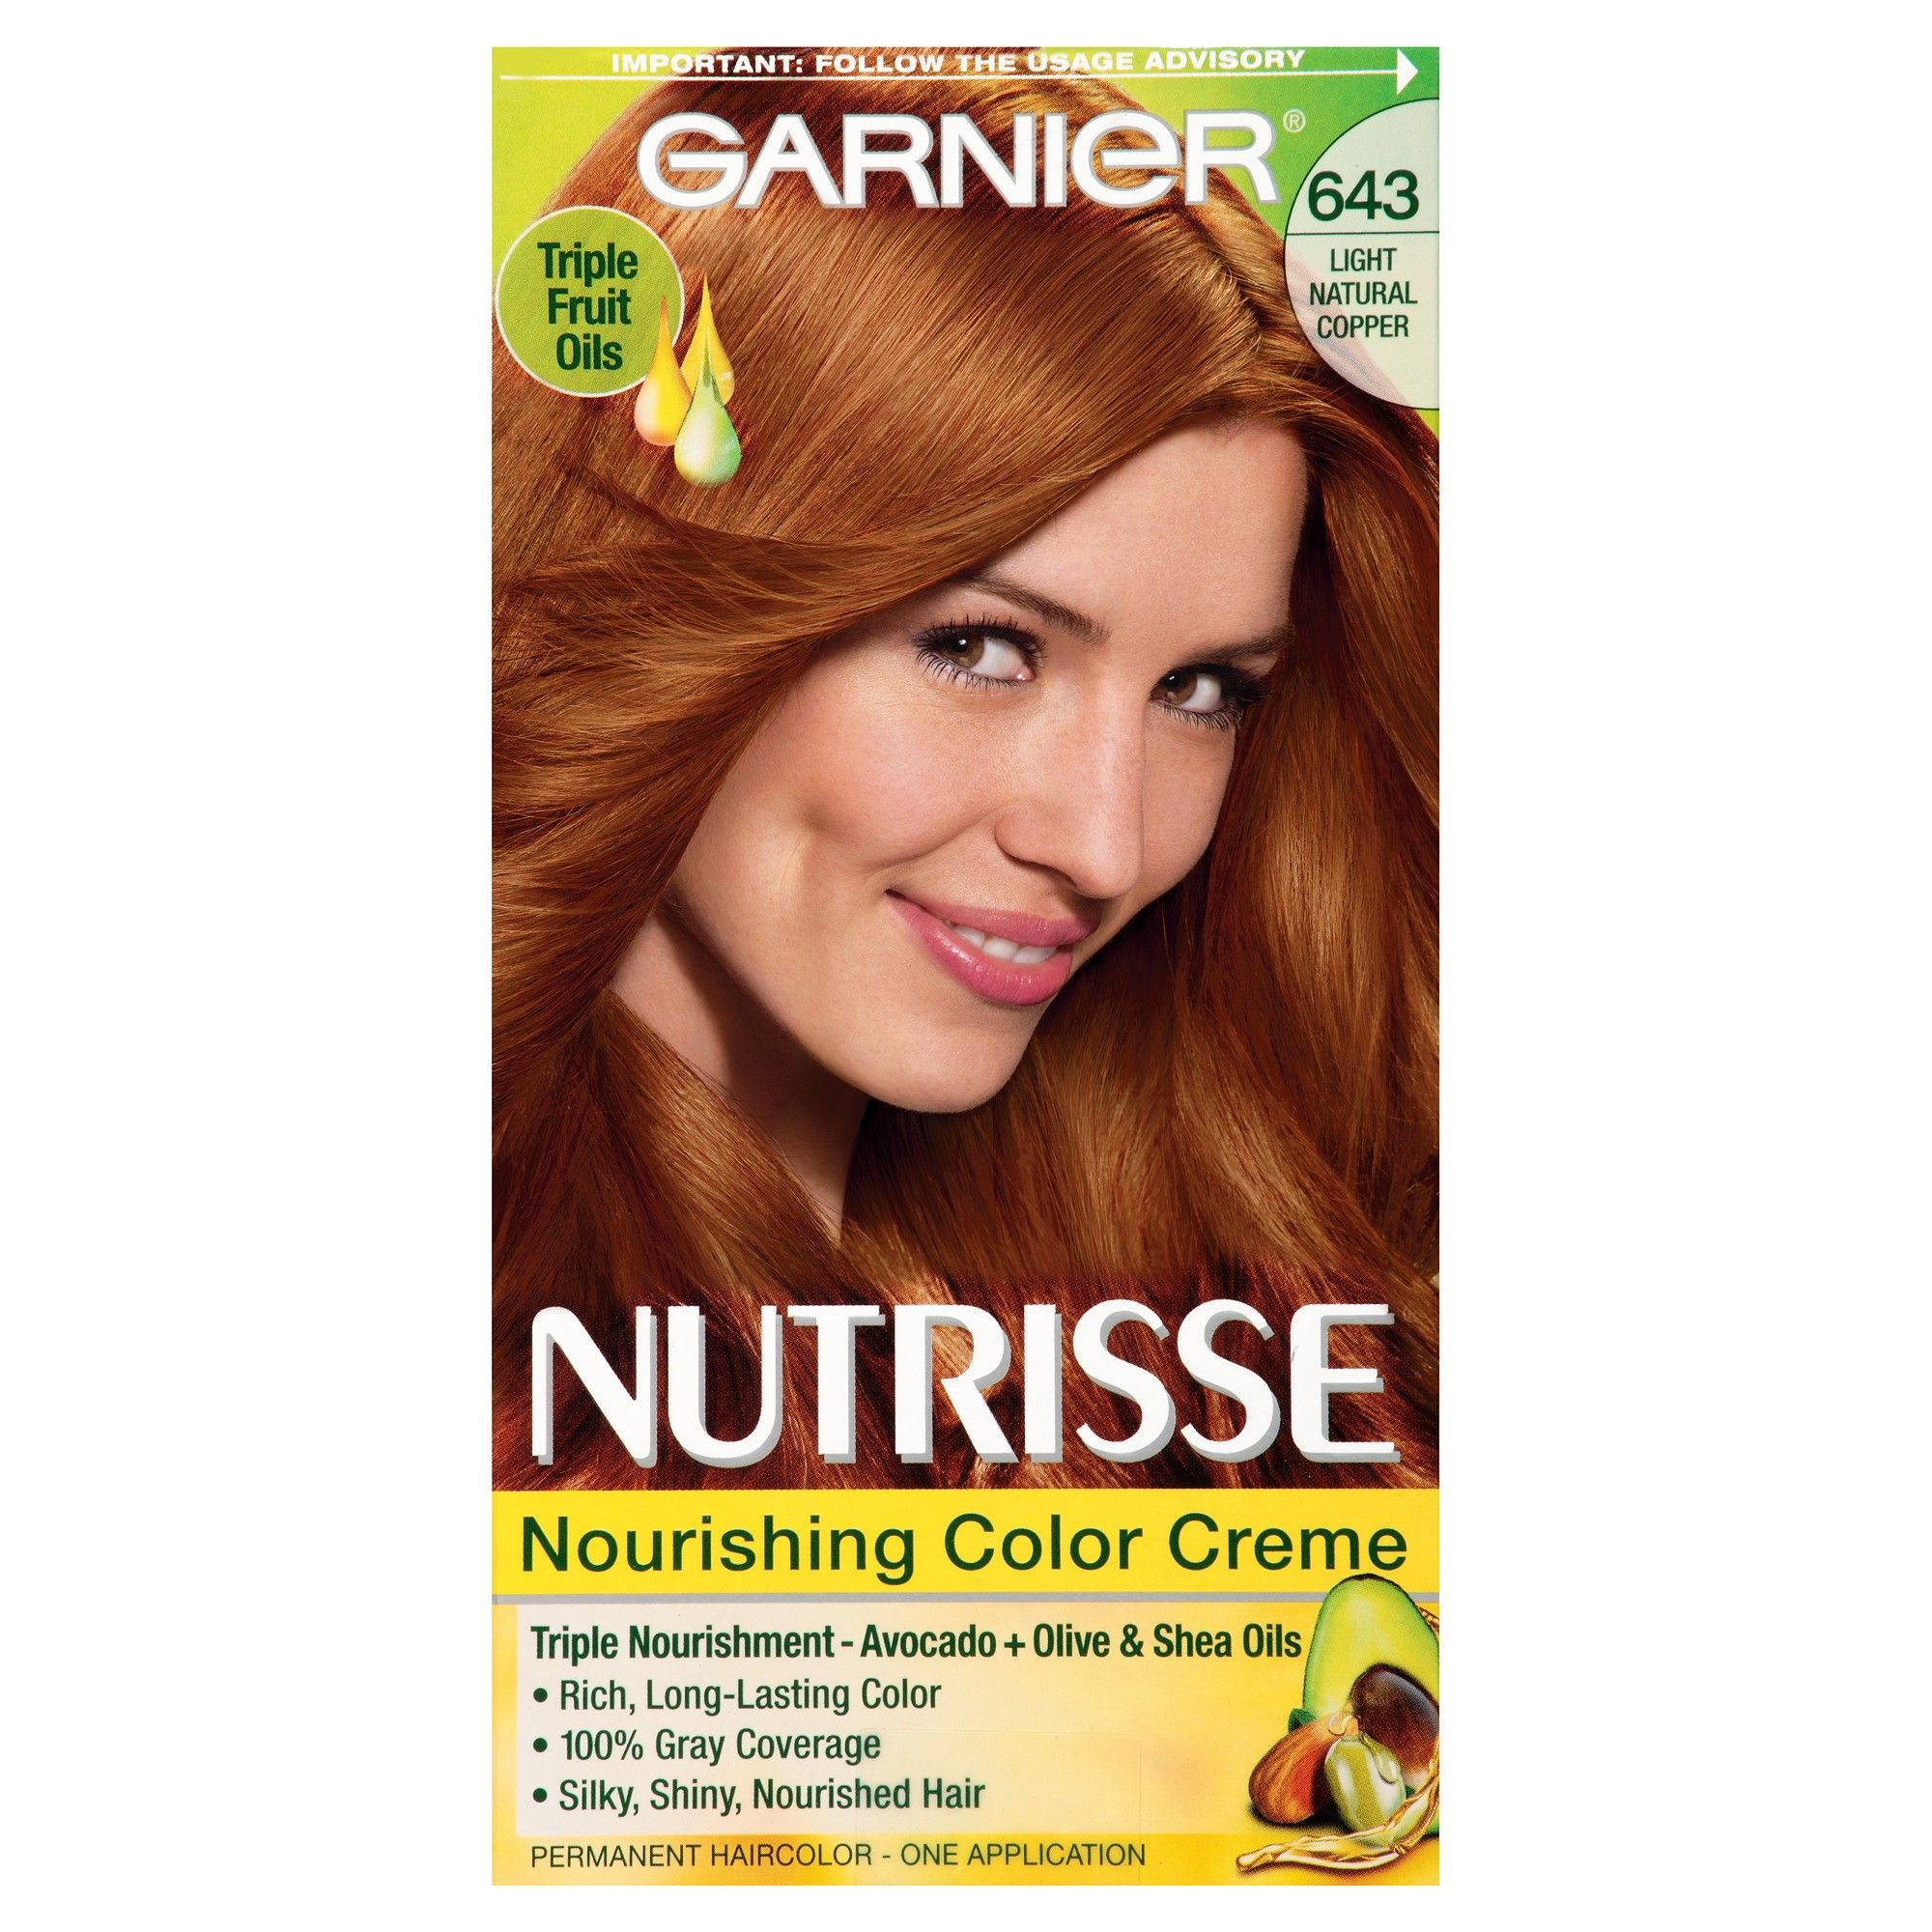 Garnier Nutrisse Nourishing Color Creme 643 Light Natural Copper